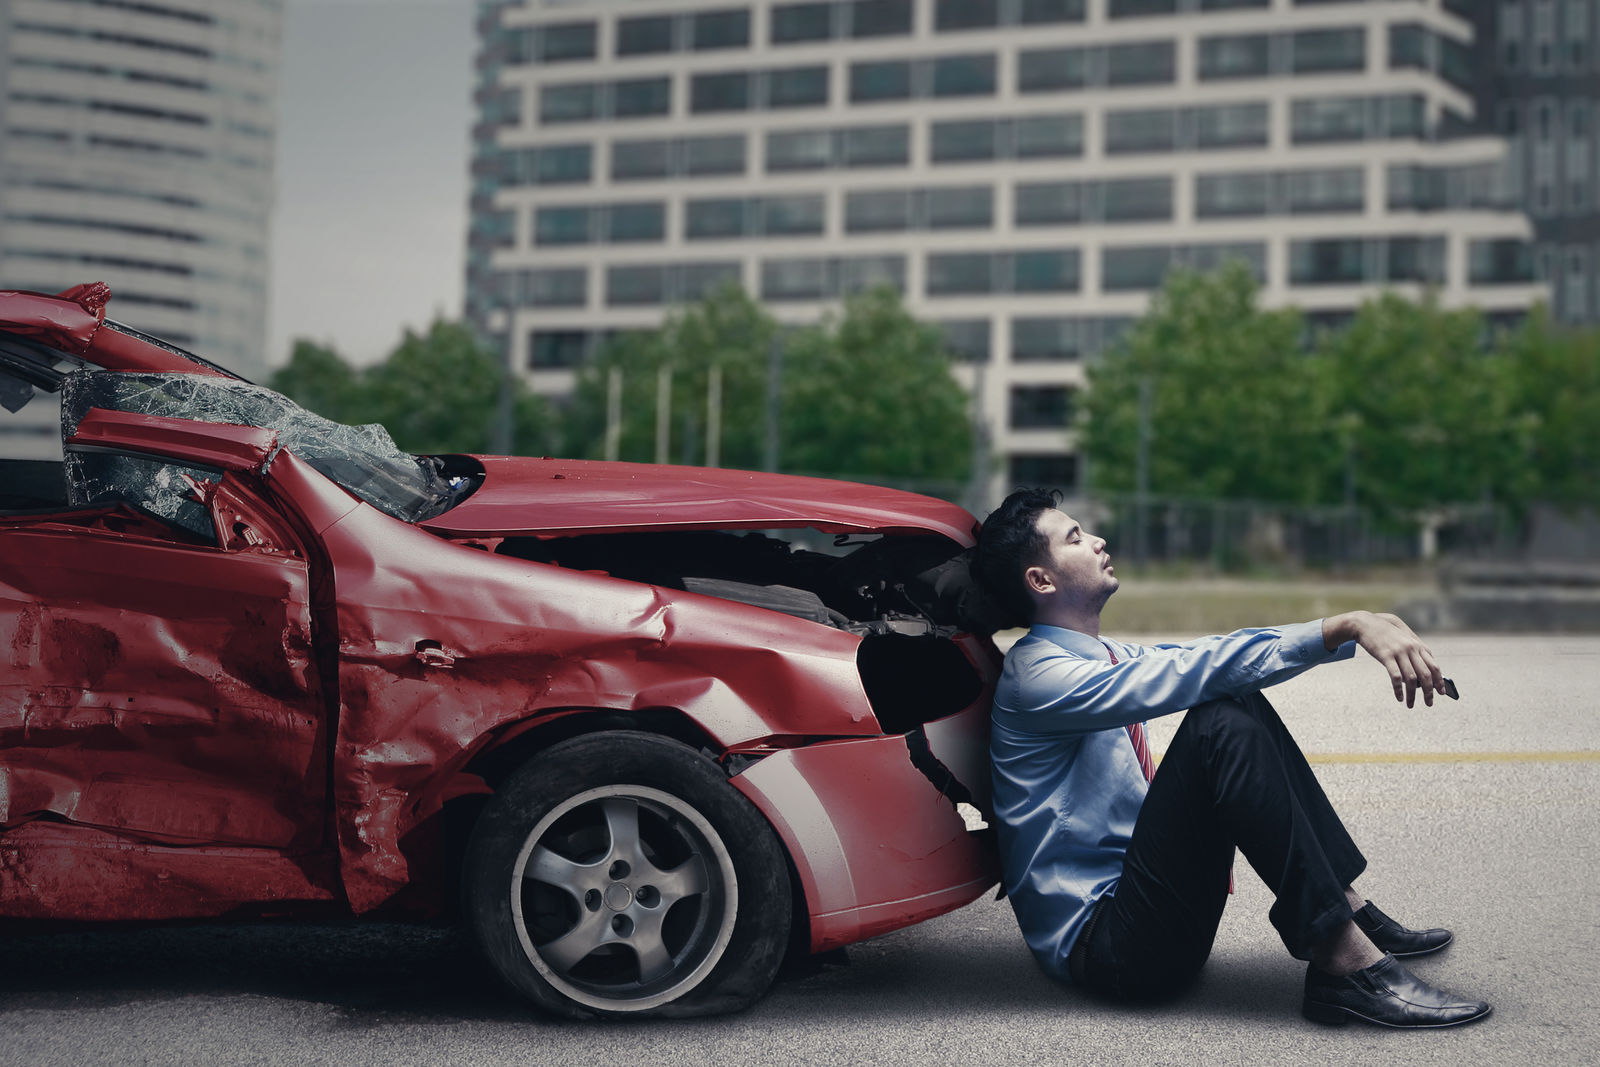 After an Auto Accident: How to Act and What to Avoid